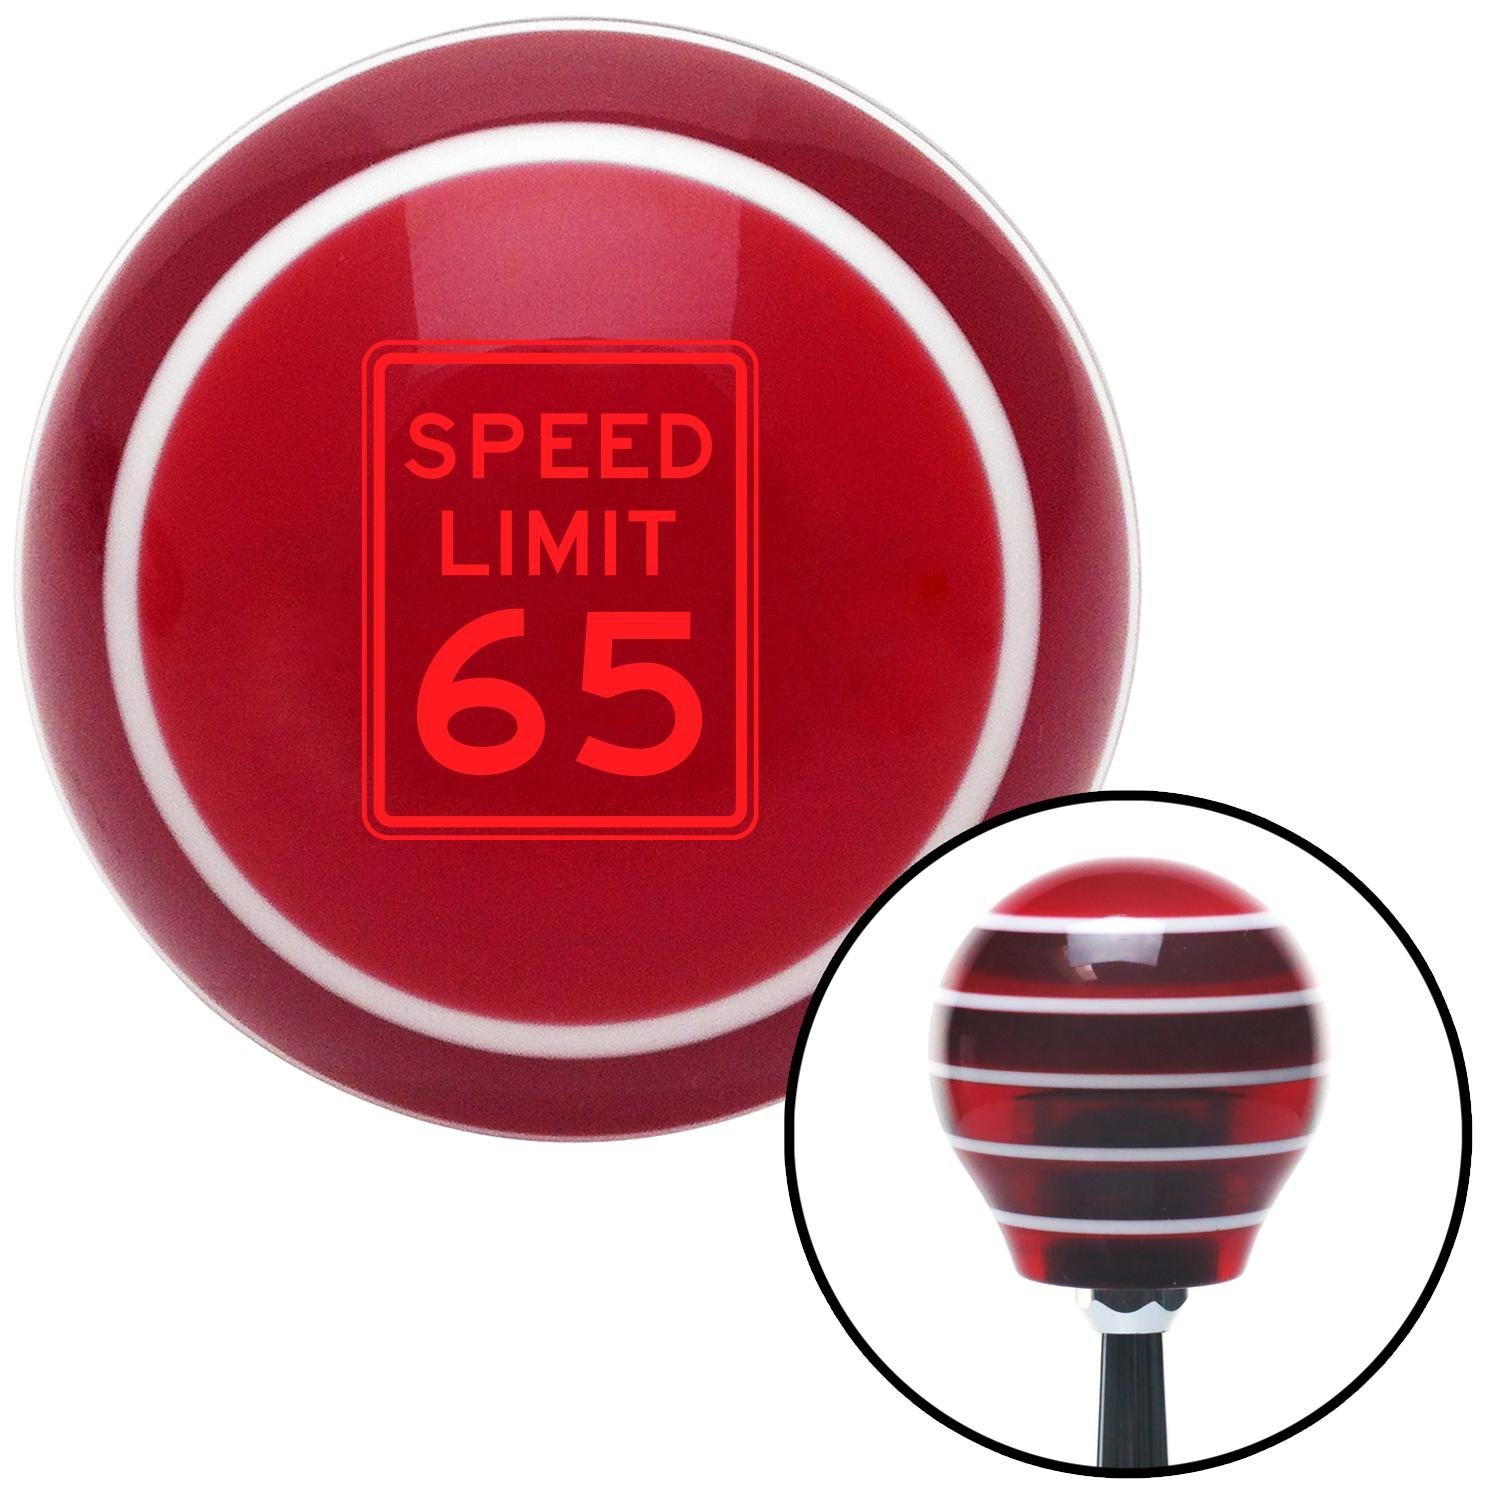 American Shifter 119502 Red Stripe Shift Knob with M16 x 1.5 Insert Red Speed Limit 65